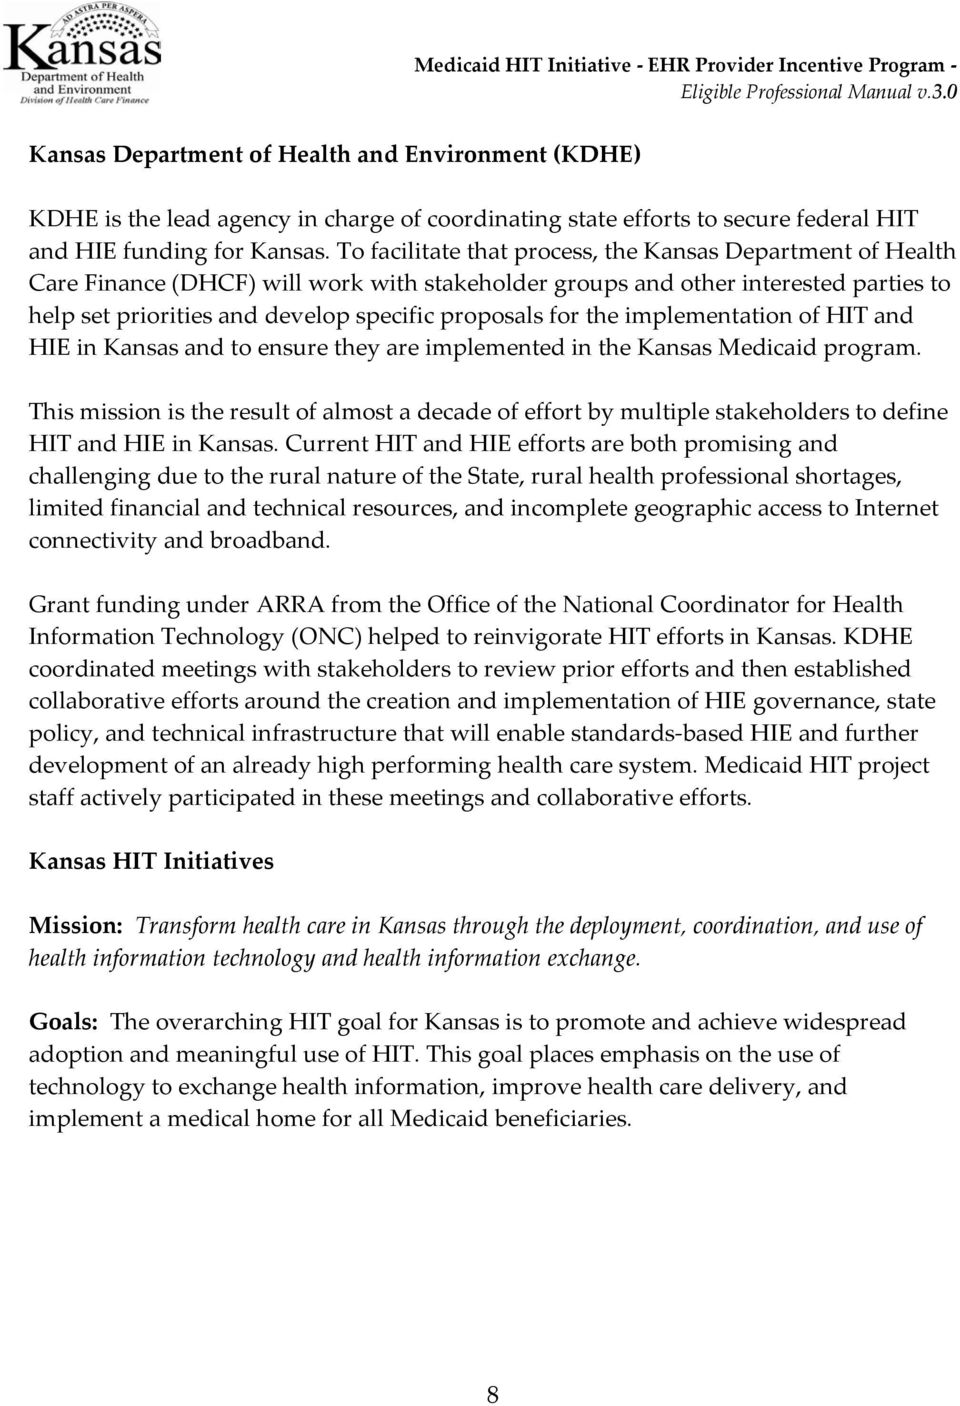 for the implementation of HIT and HIE in Kansas and to ensure they are implemented in the Kansas Medicaid program.